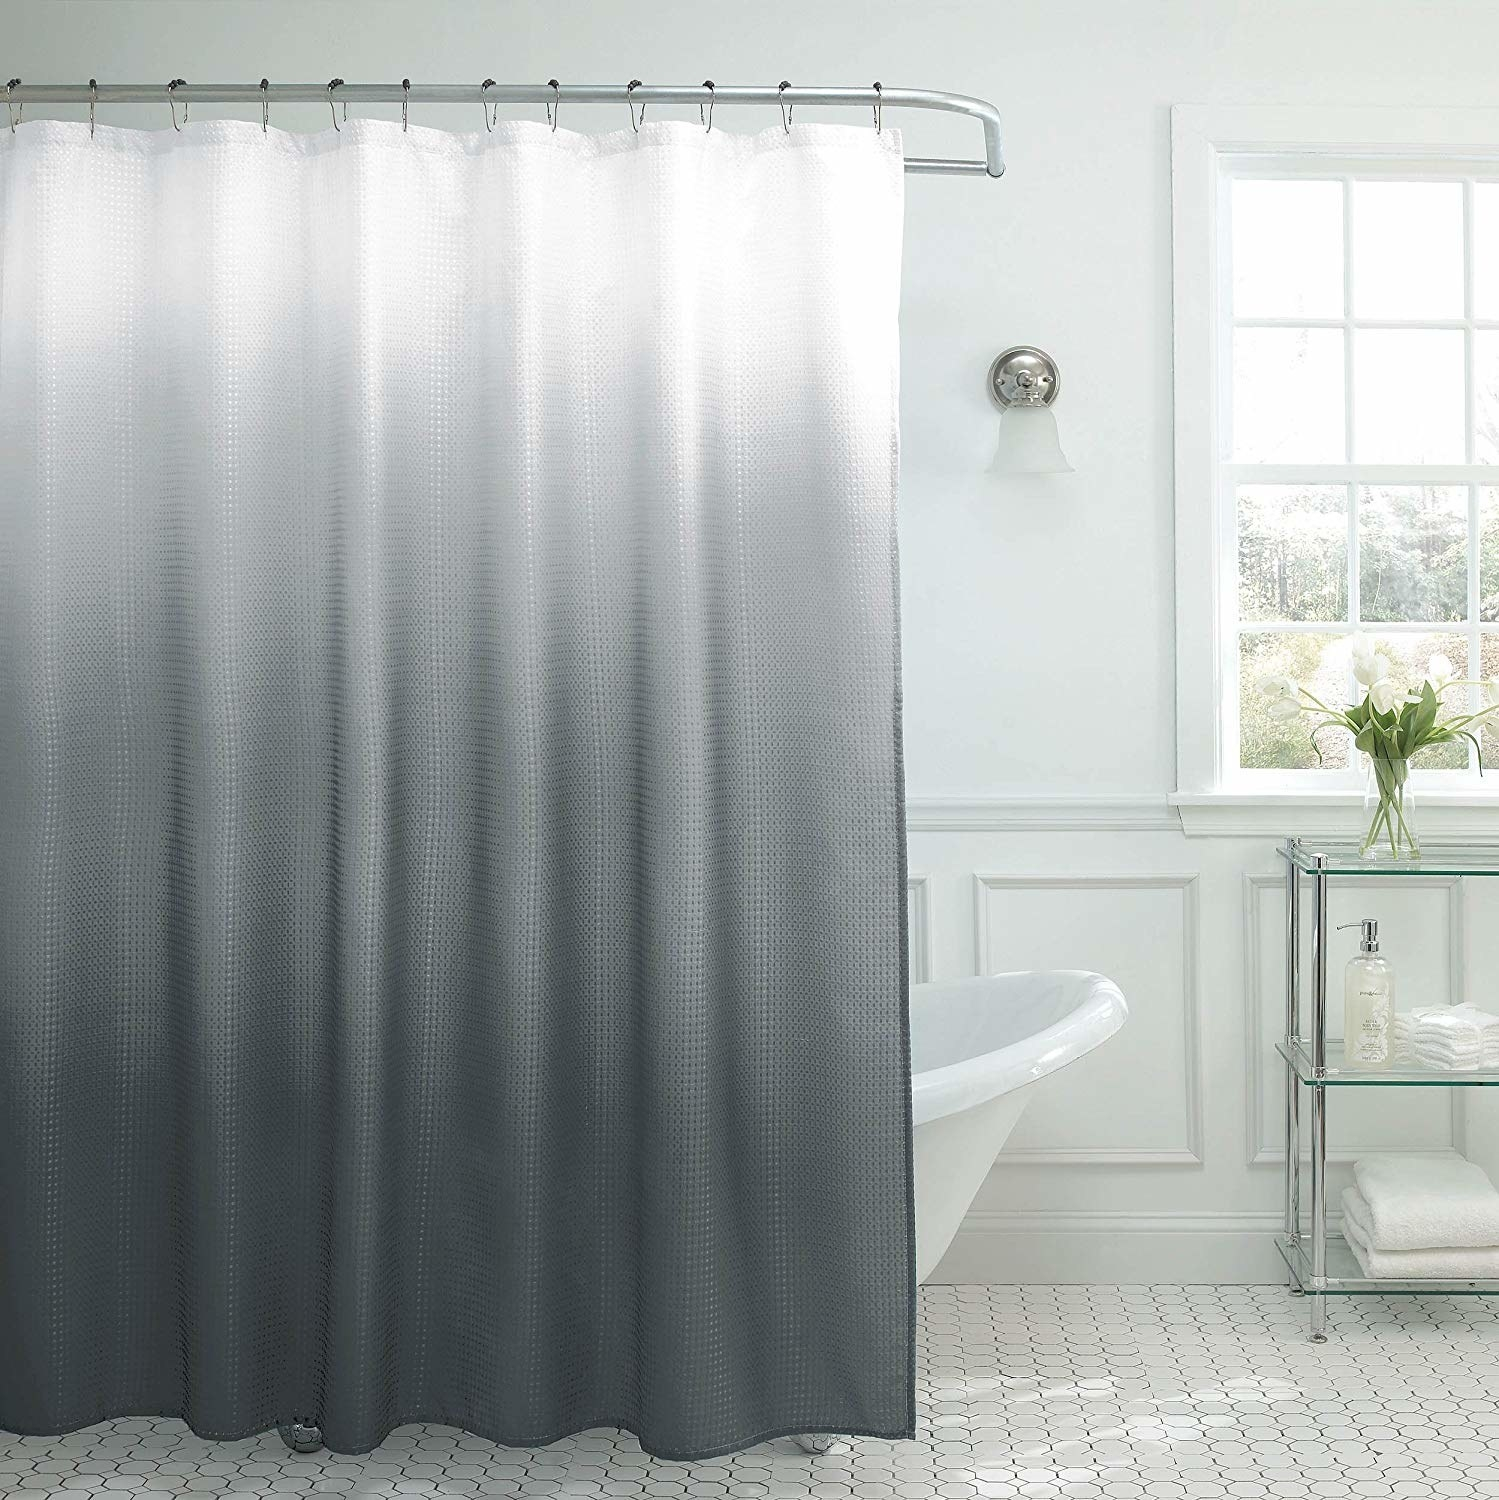 Gray ombre curtains hanging in bathroom